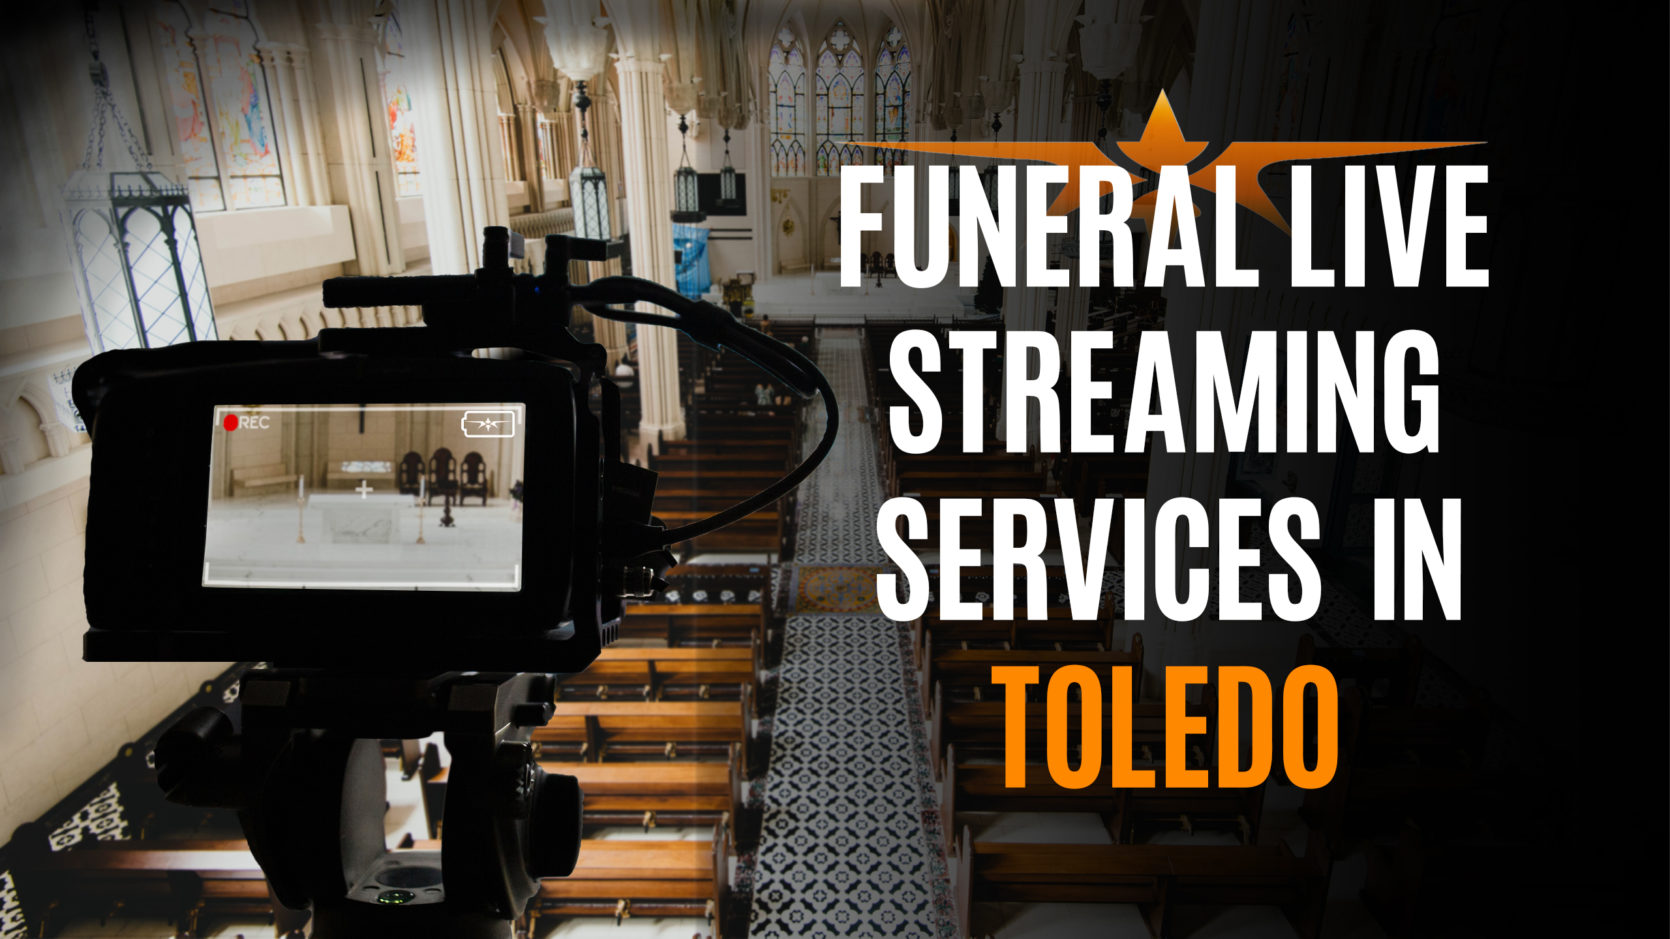 Funeral Live Streaming Services in Toledo